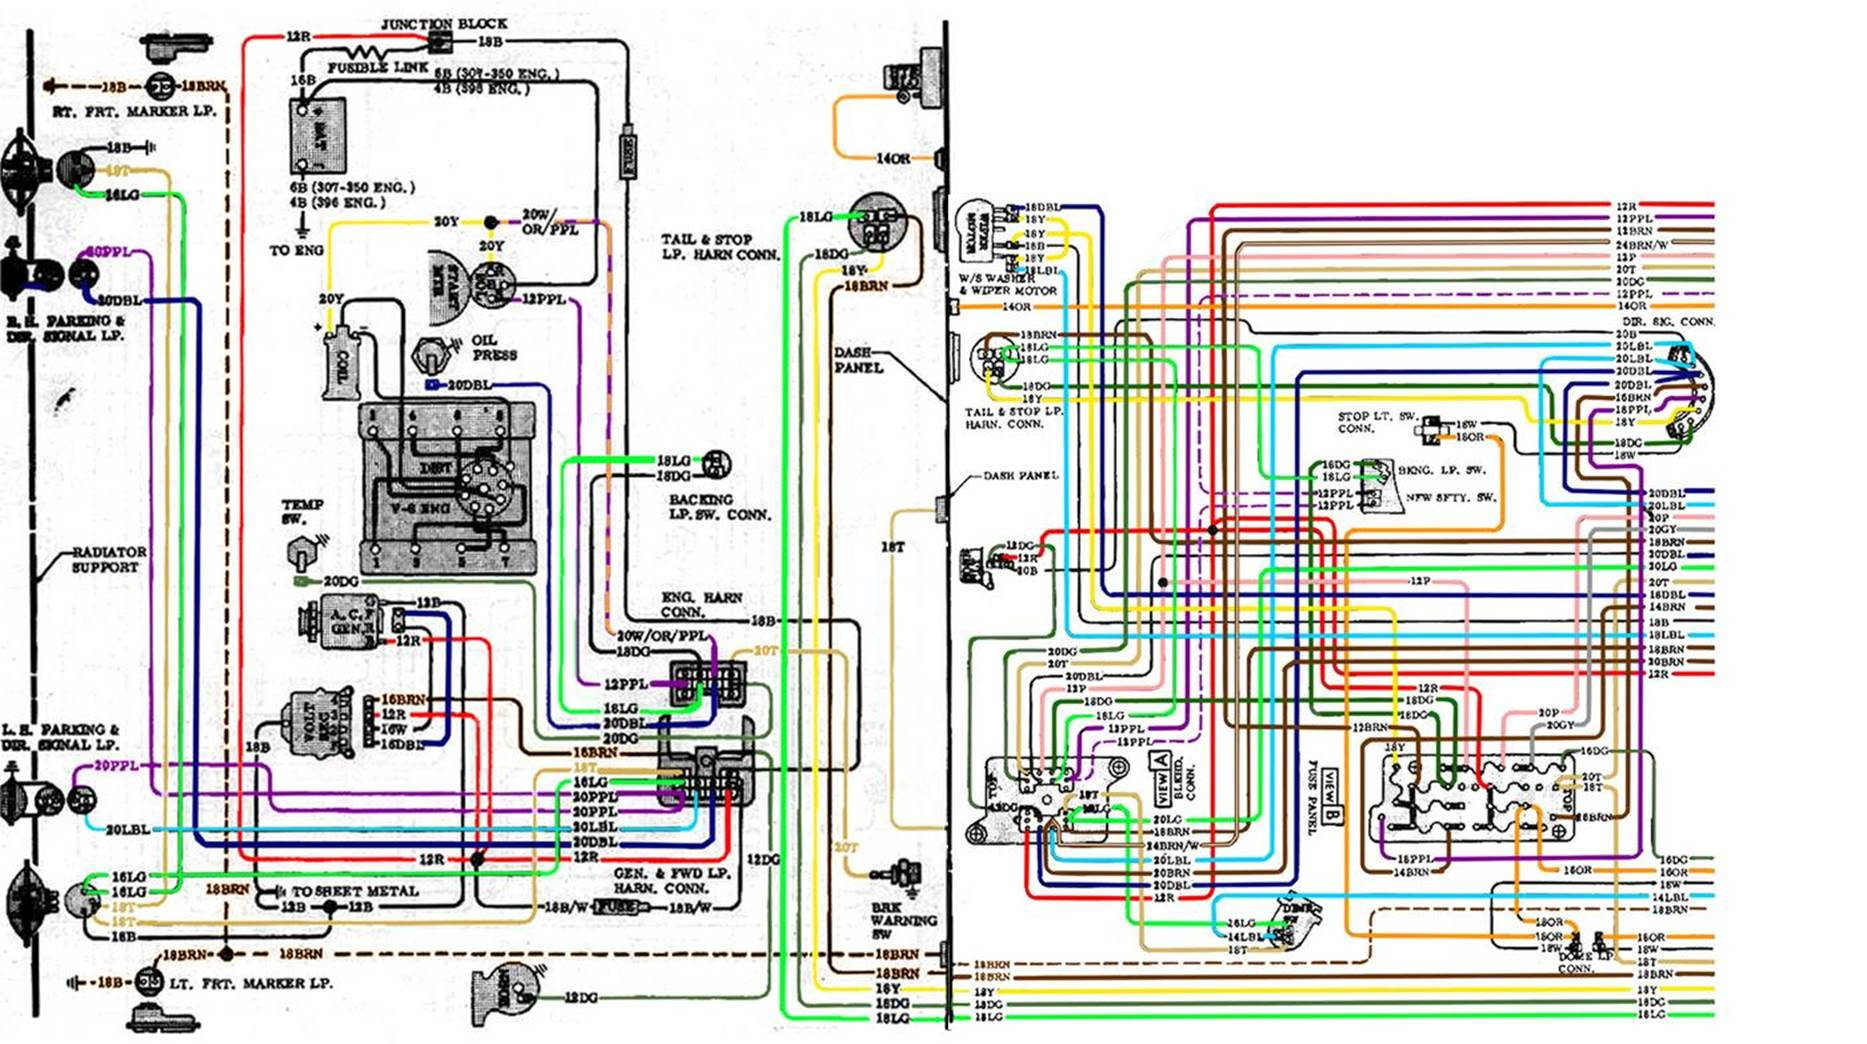 image002 72 c10 wiring diagram chevy truck wiring diagram \u2022 wiring diagrams 1969 mustang wiring diagram at bayanpartner.co